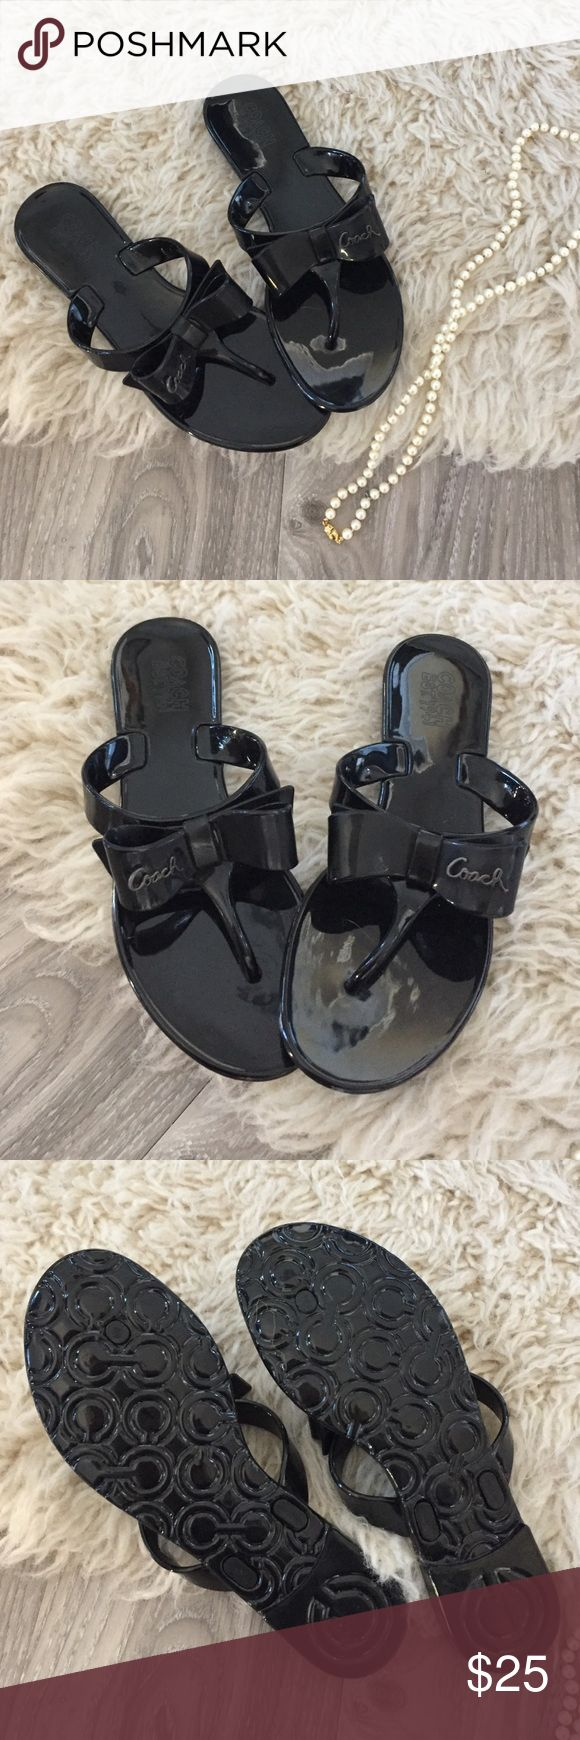 Coach Jelly Bow Sandals These are seriously cute and never worn! Black Coach jelly sandals with the sweetest bows. I would love to keep these for myself, they are unfortunately a bit too small for me! Coach Shoes Sandals